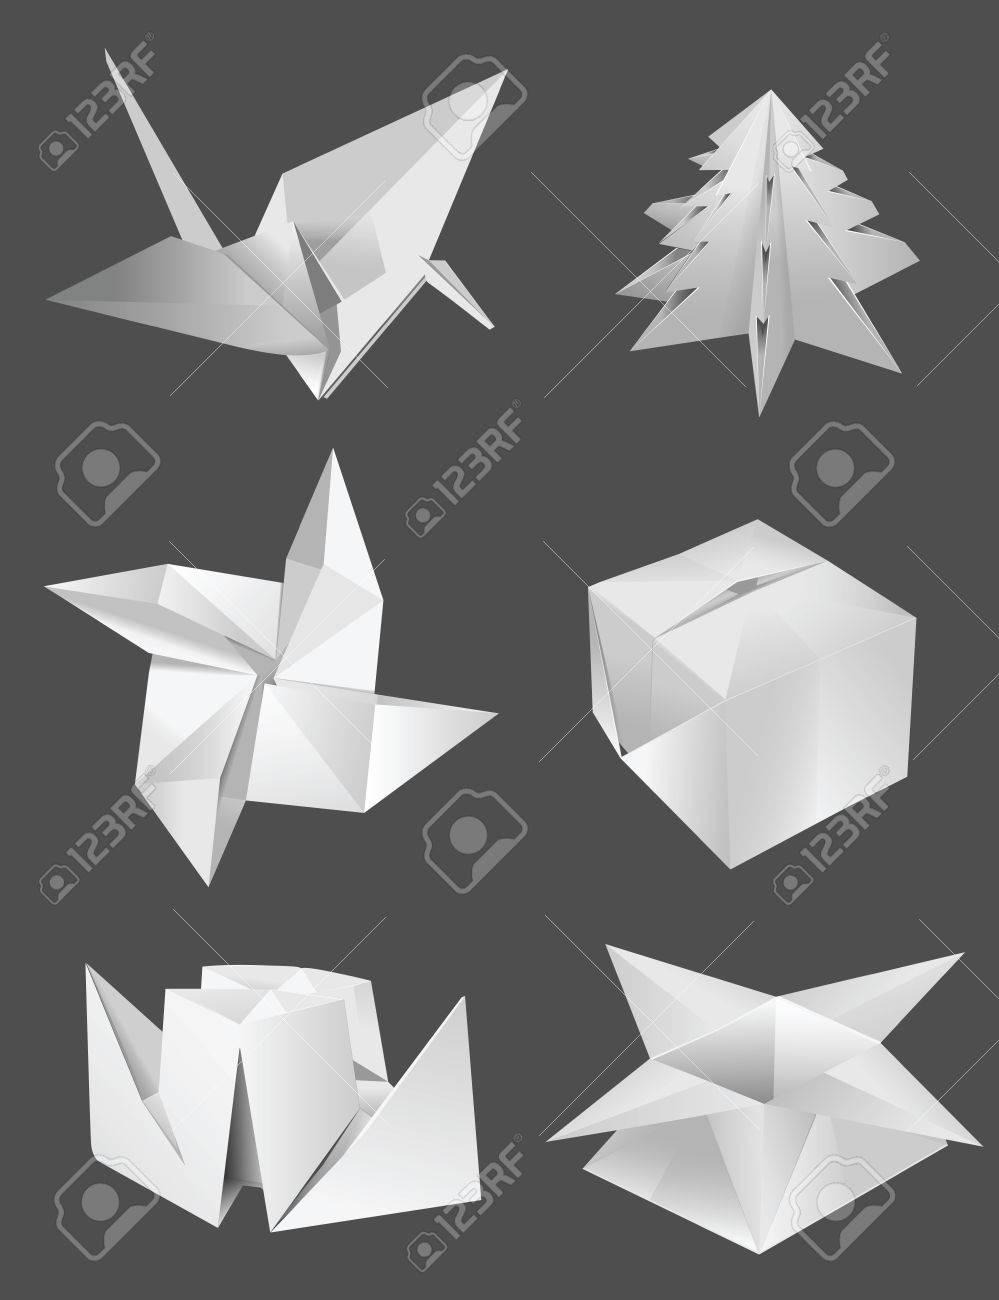 Origami bird box tree ship flower royalty free cliparts vectors origami bird box tree ship flower stock vector 23350407 mightylinksfo